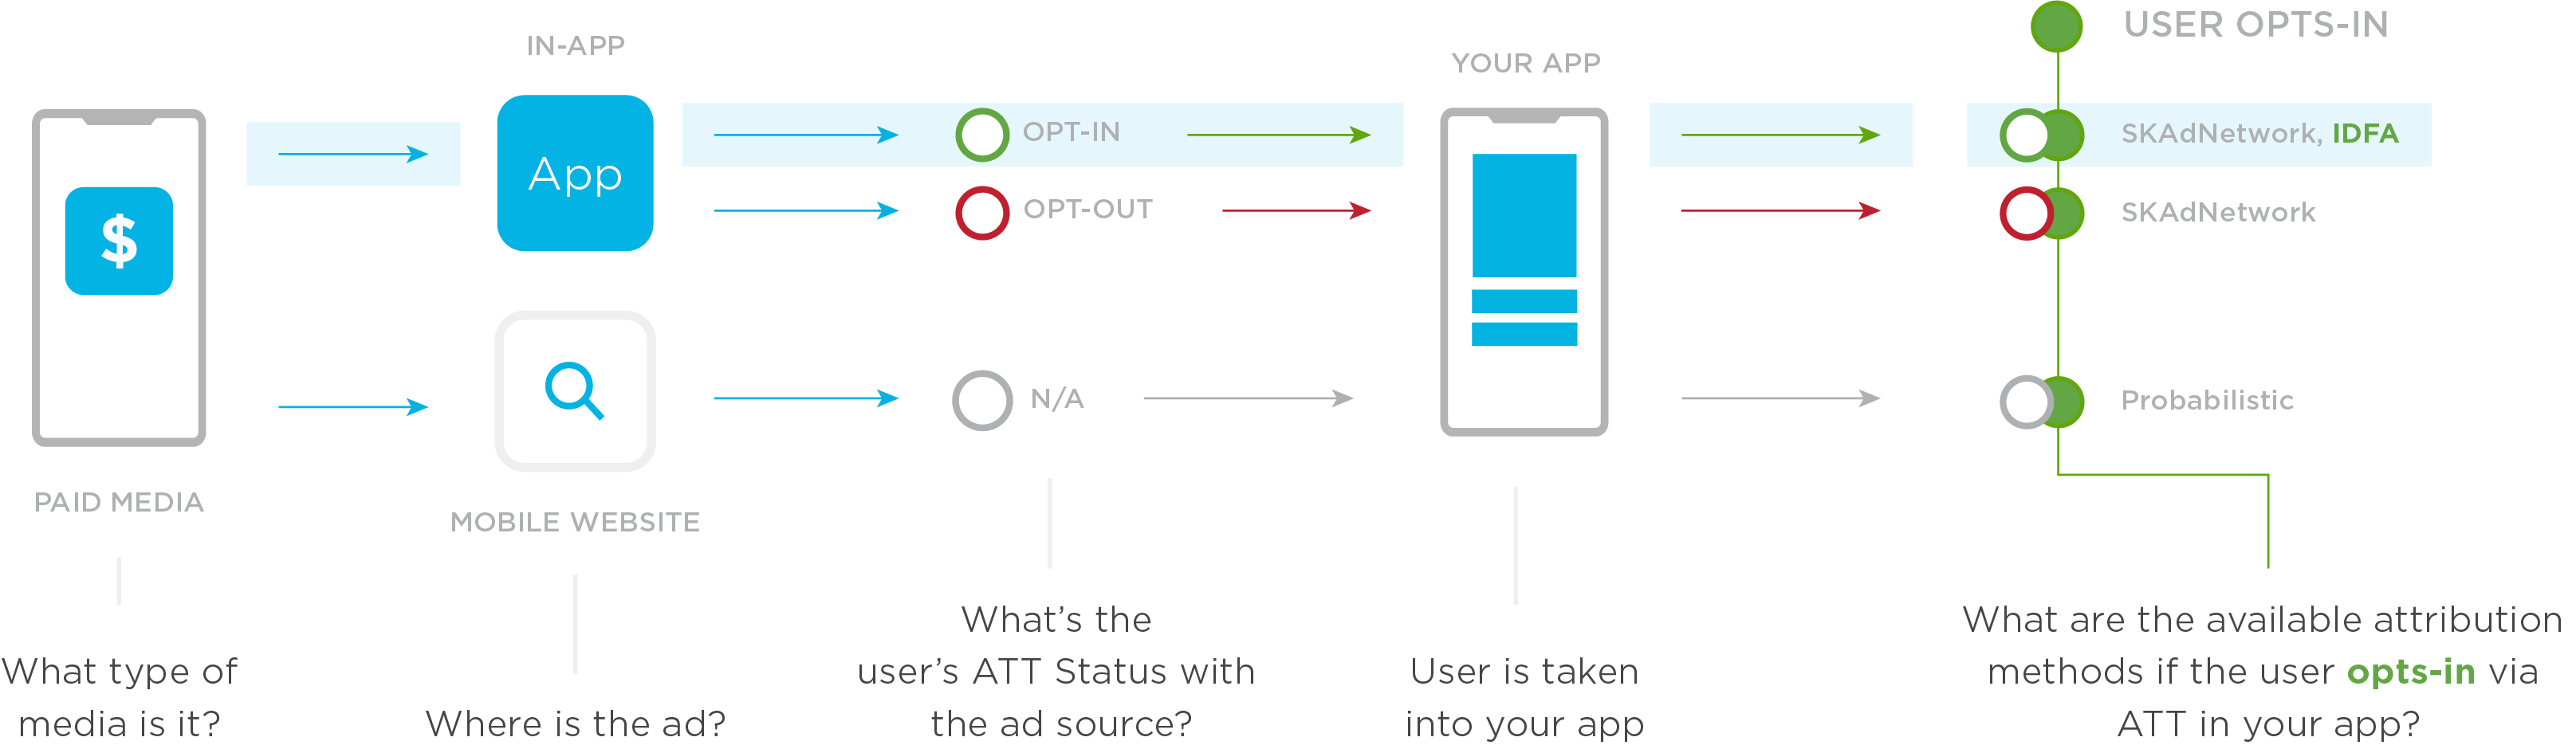 Probabilistic attribution and ATT opt-in